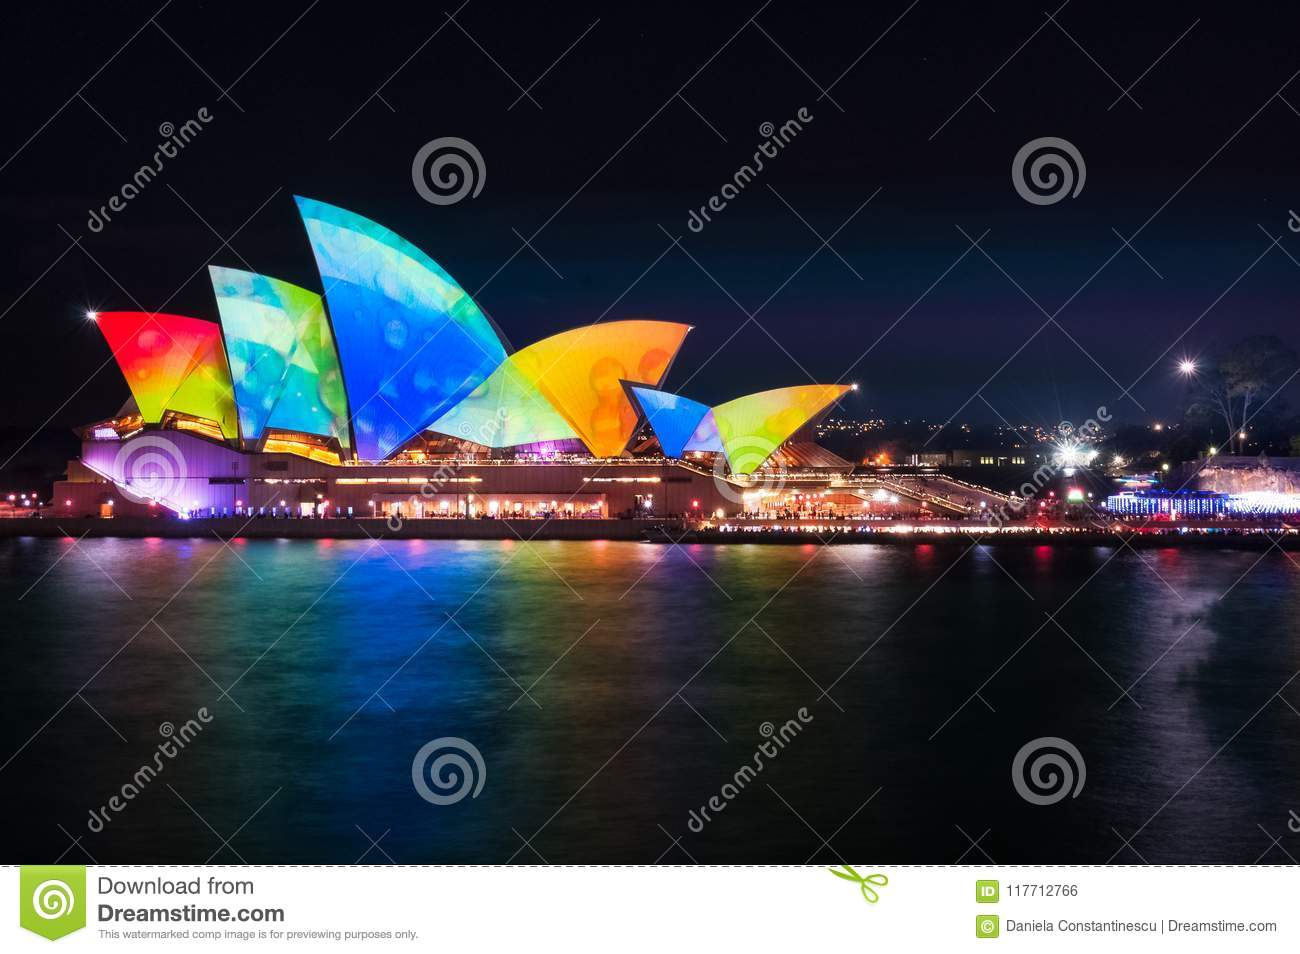 Colorful Water Drops on the Roofs of Opera House at Vivid Sydney